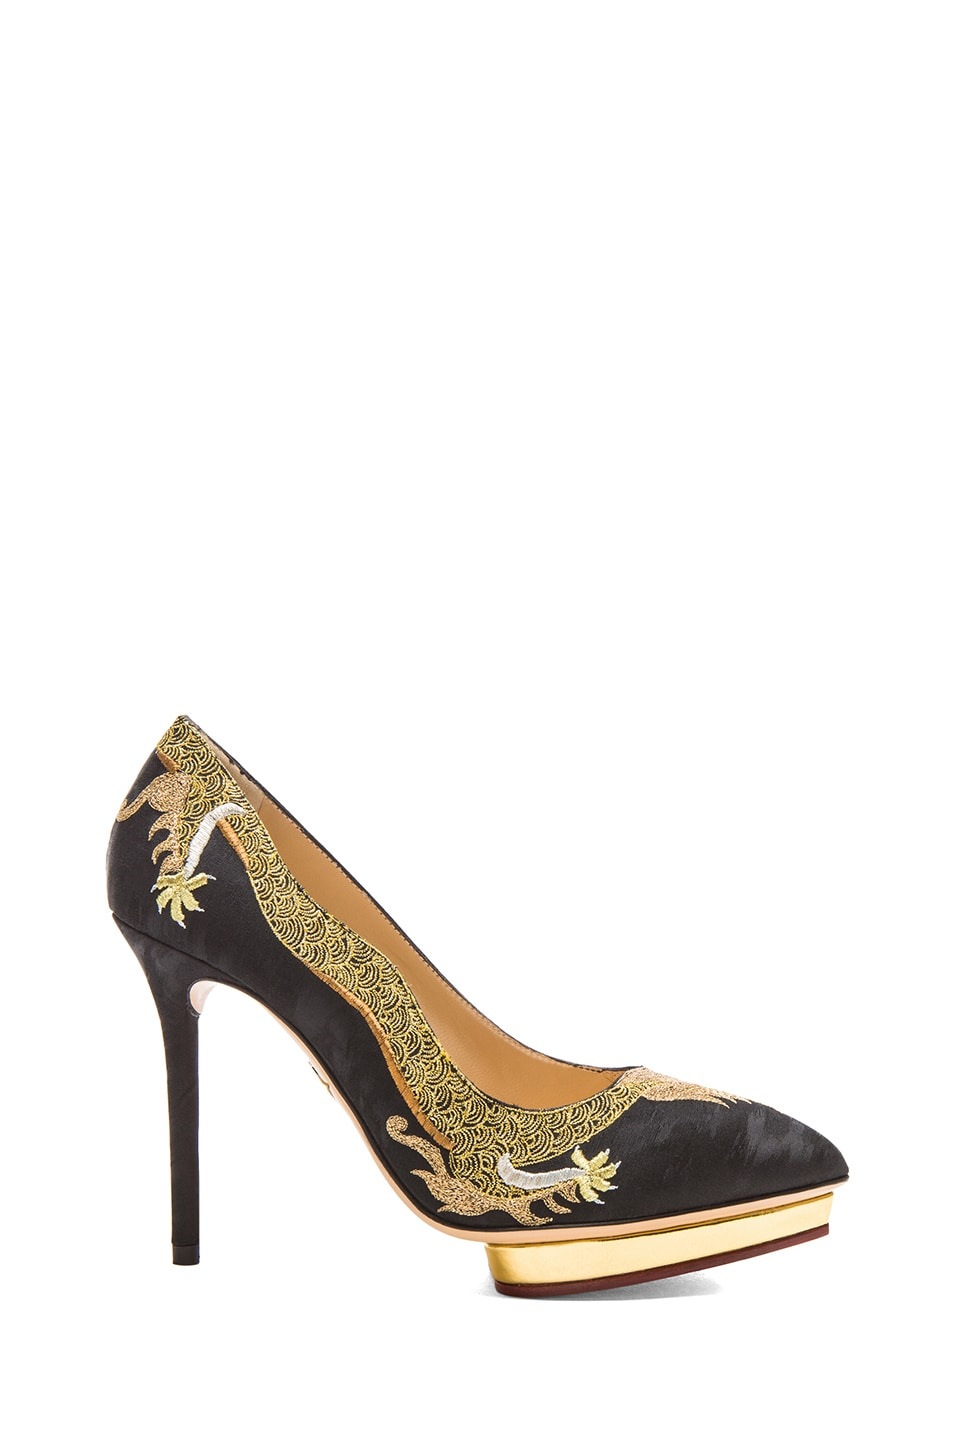 Image 1 of Charlotte Olympia Auspicious Debbie Silk Satin Pumps in Onyx